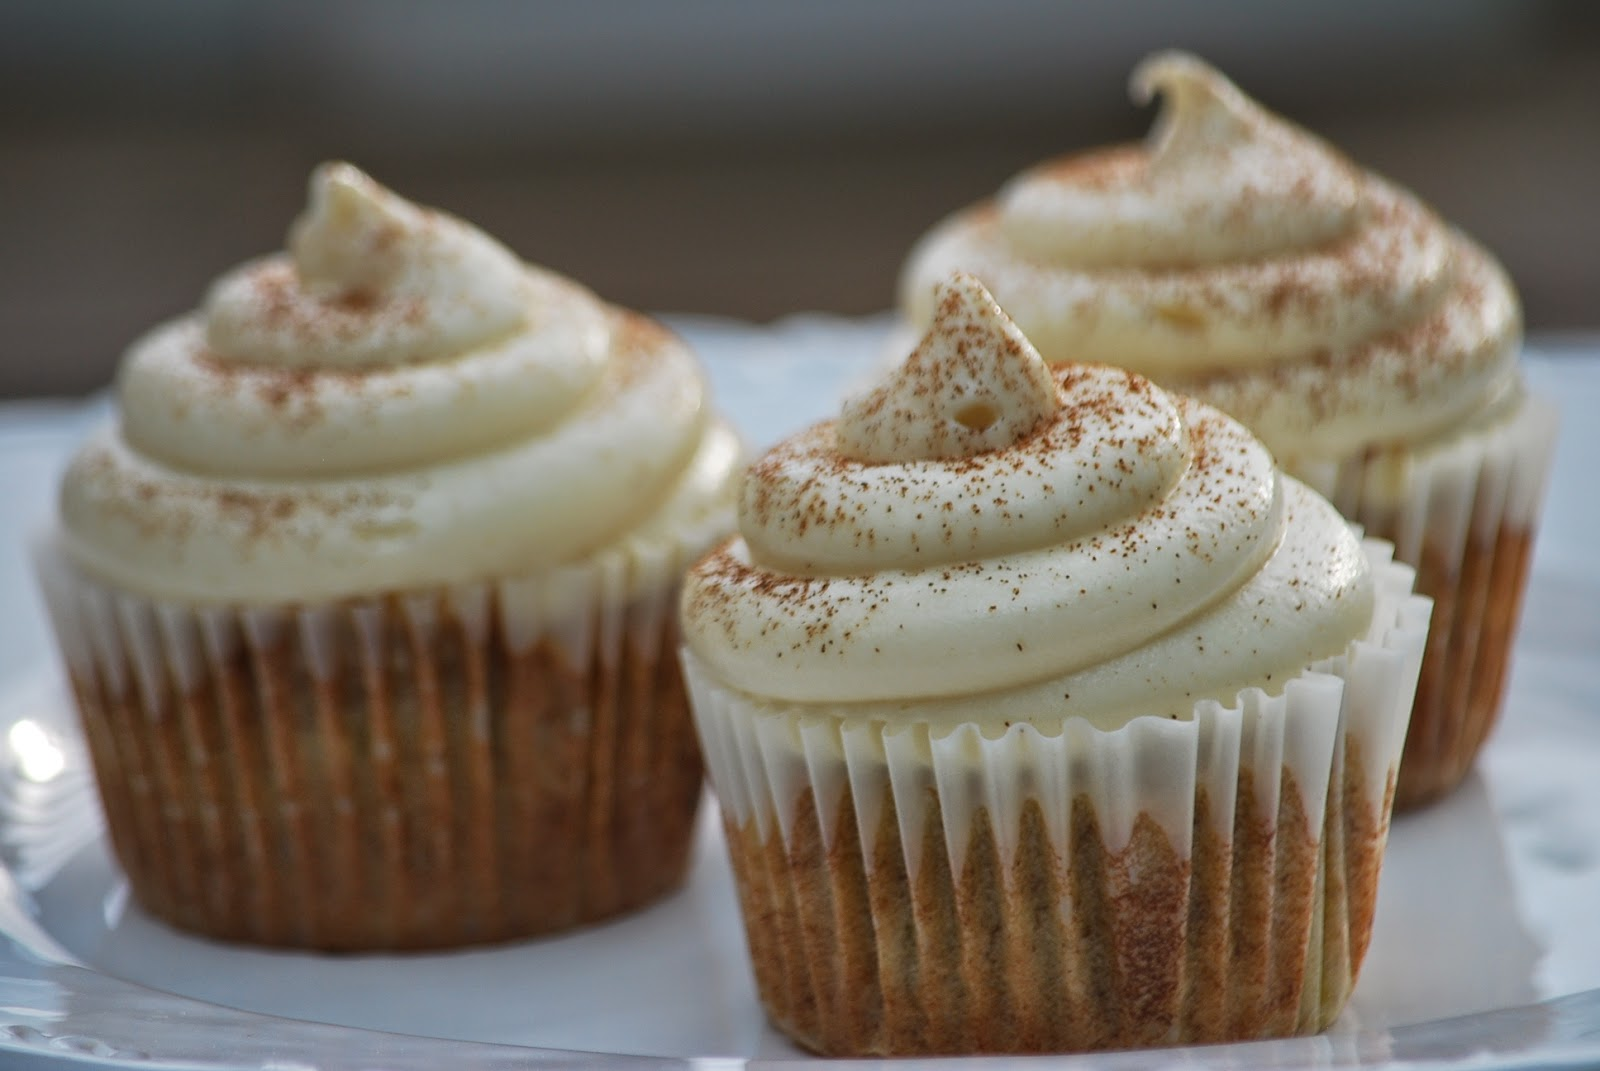 My story in recipes: Hummingbird Cupcakes